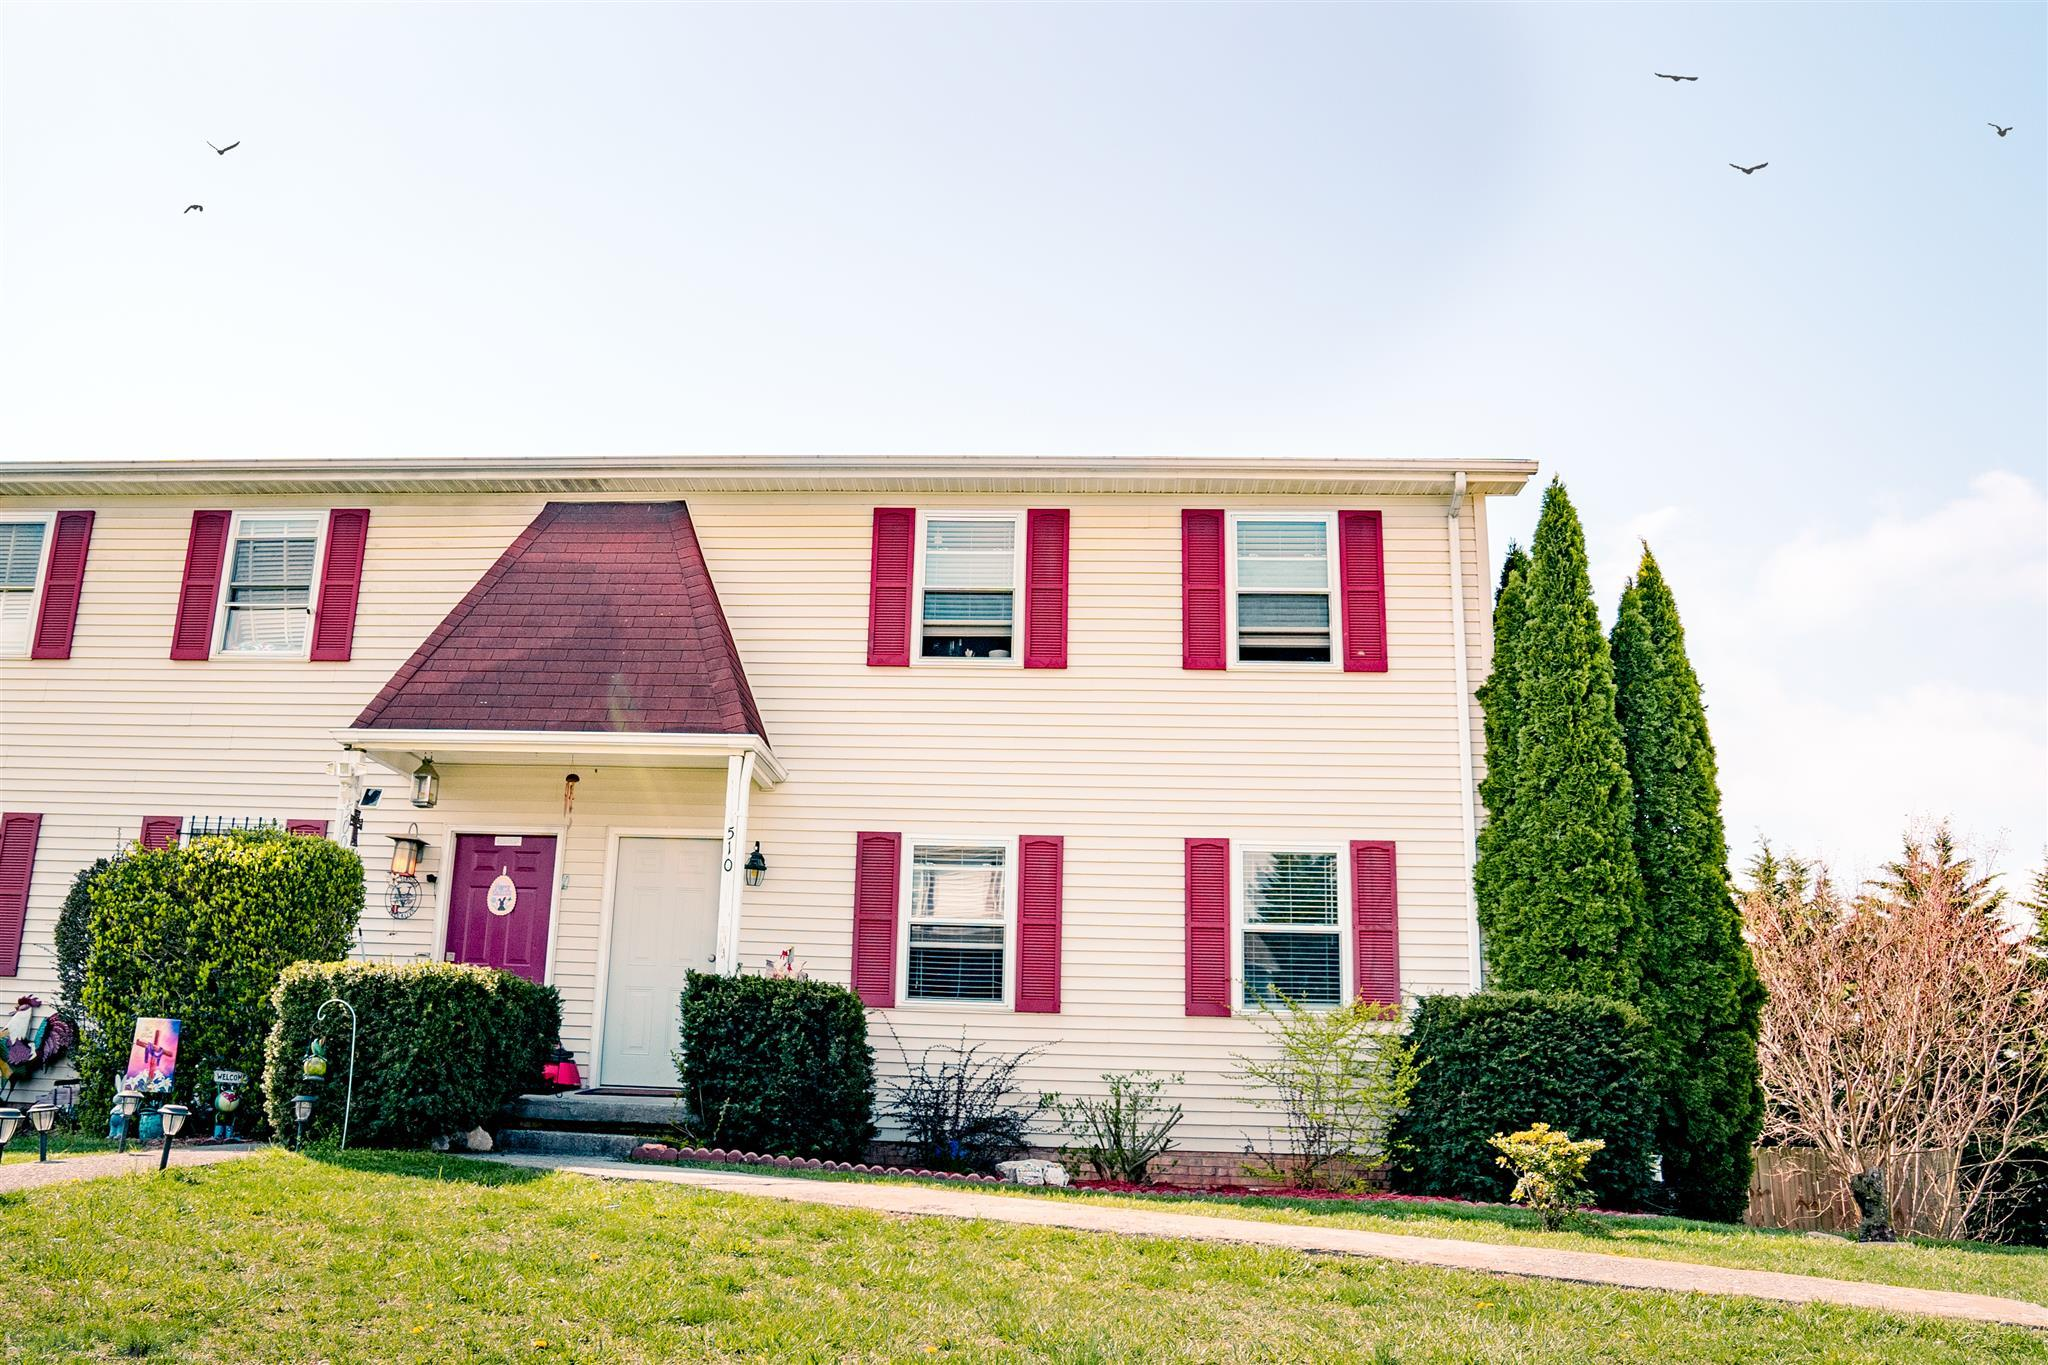 This market is in full swing and at this price and no HOA it will be sold fast. 3 Bedrooms and 2.5 Baths in the Heart of Christiansburg VA will get you all the Conveniences you are looking for. Updates include Flooring Paint Appliances Lighting Bathrooms New interior doors blinds & fencing. You will enjoy all the love and work put into this home.